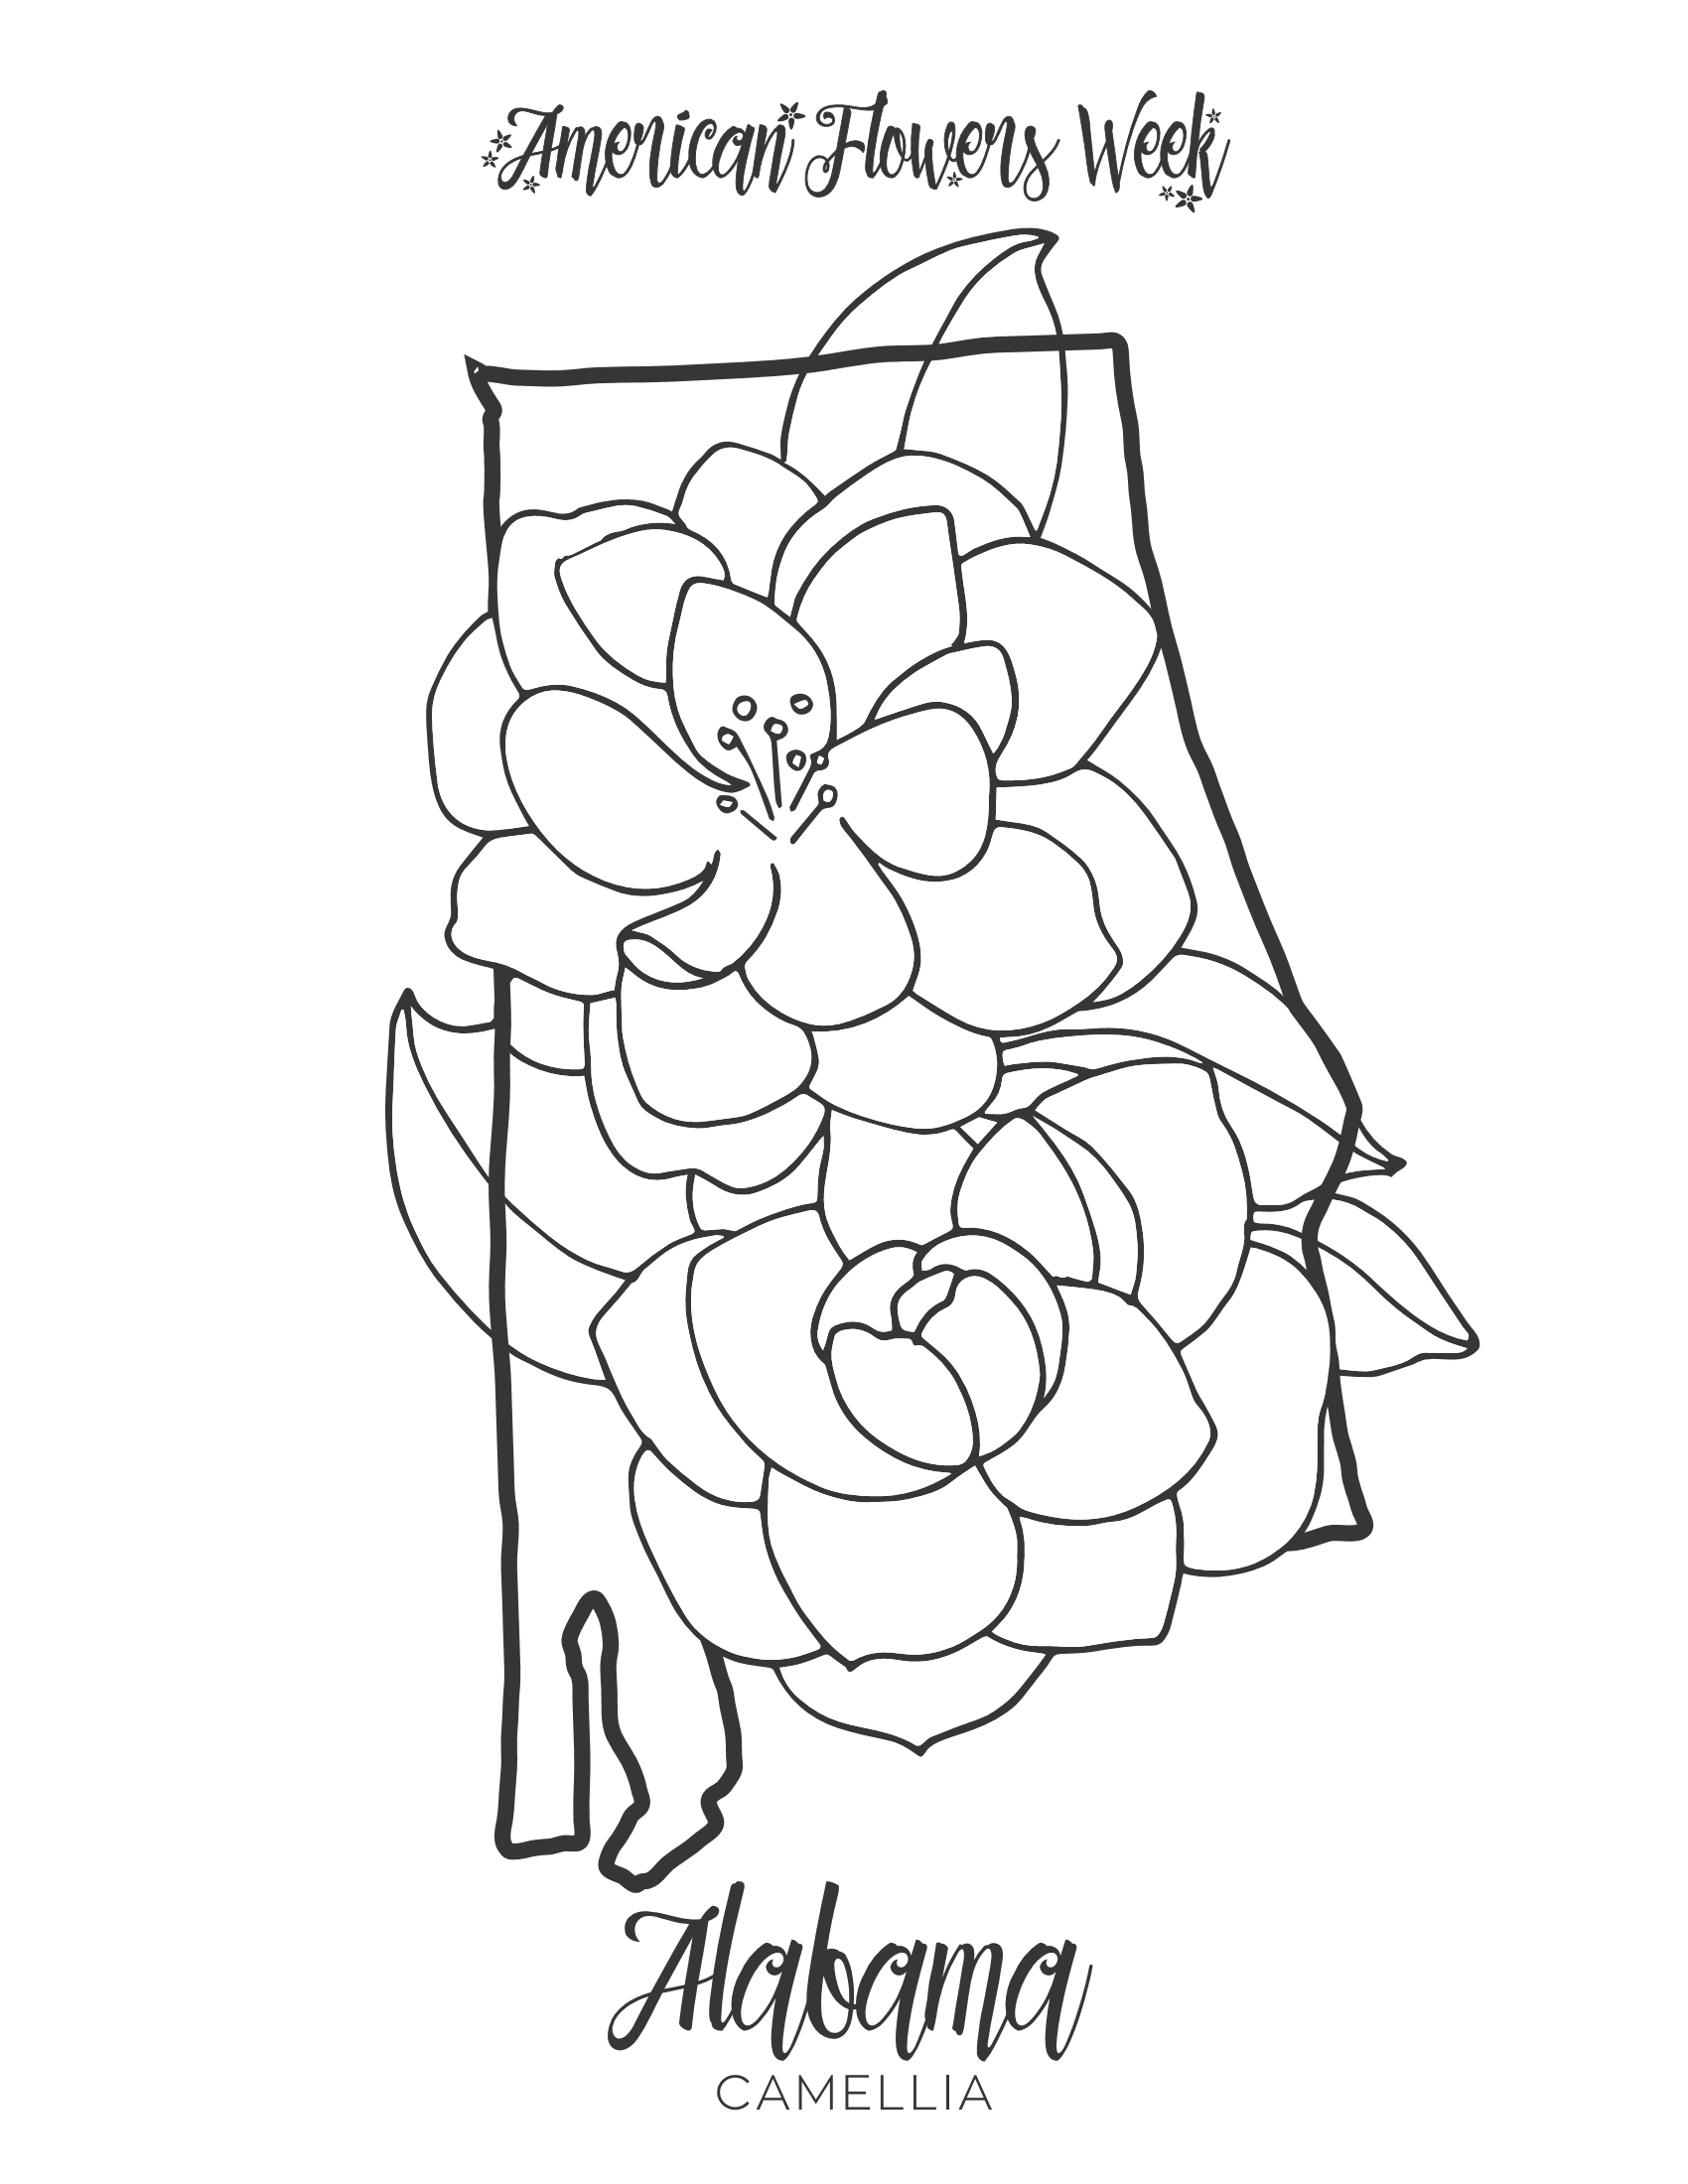 michigan state flower 50 state flowers coloring pages for kids michigan state flower